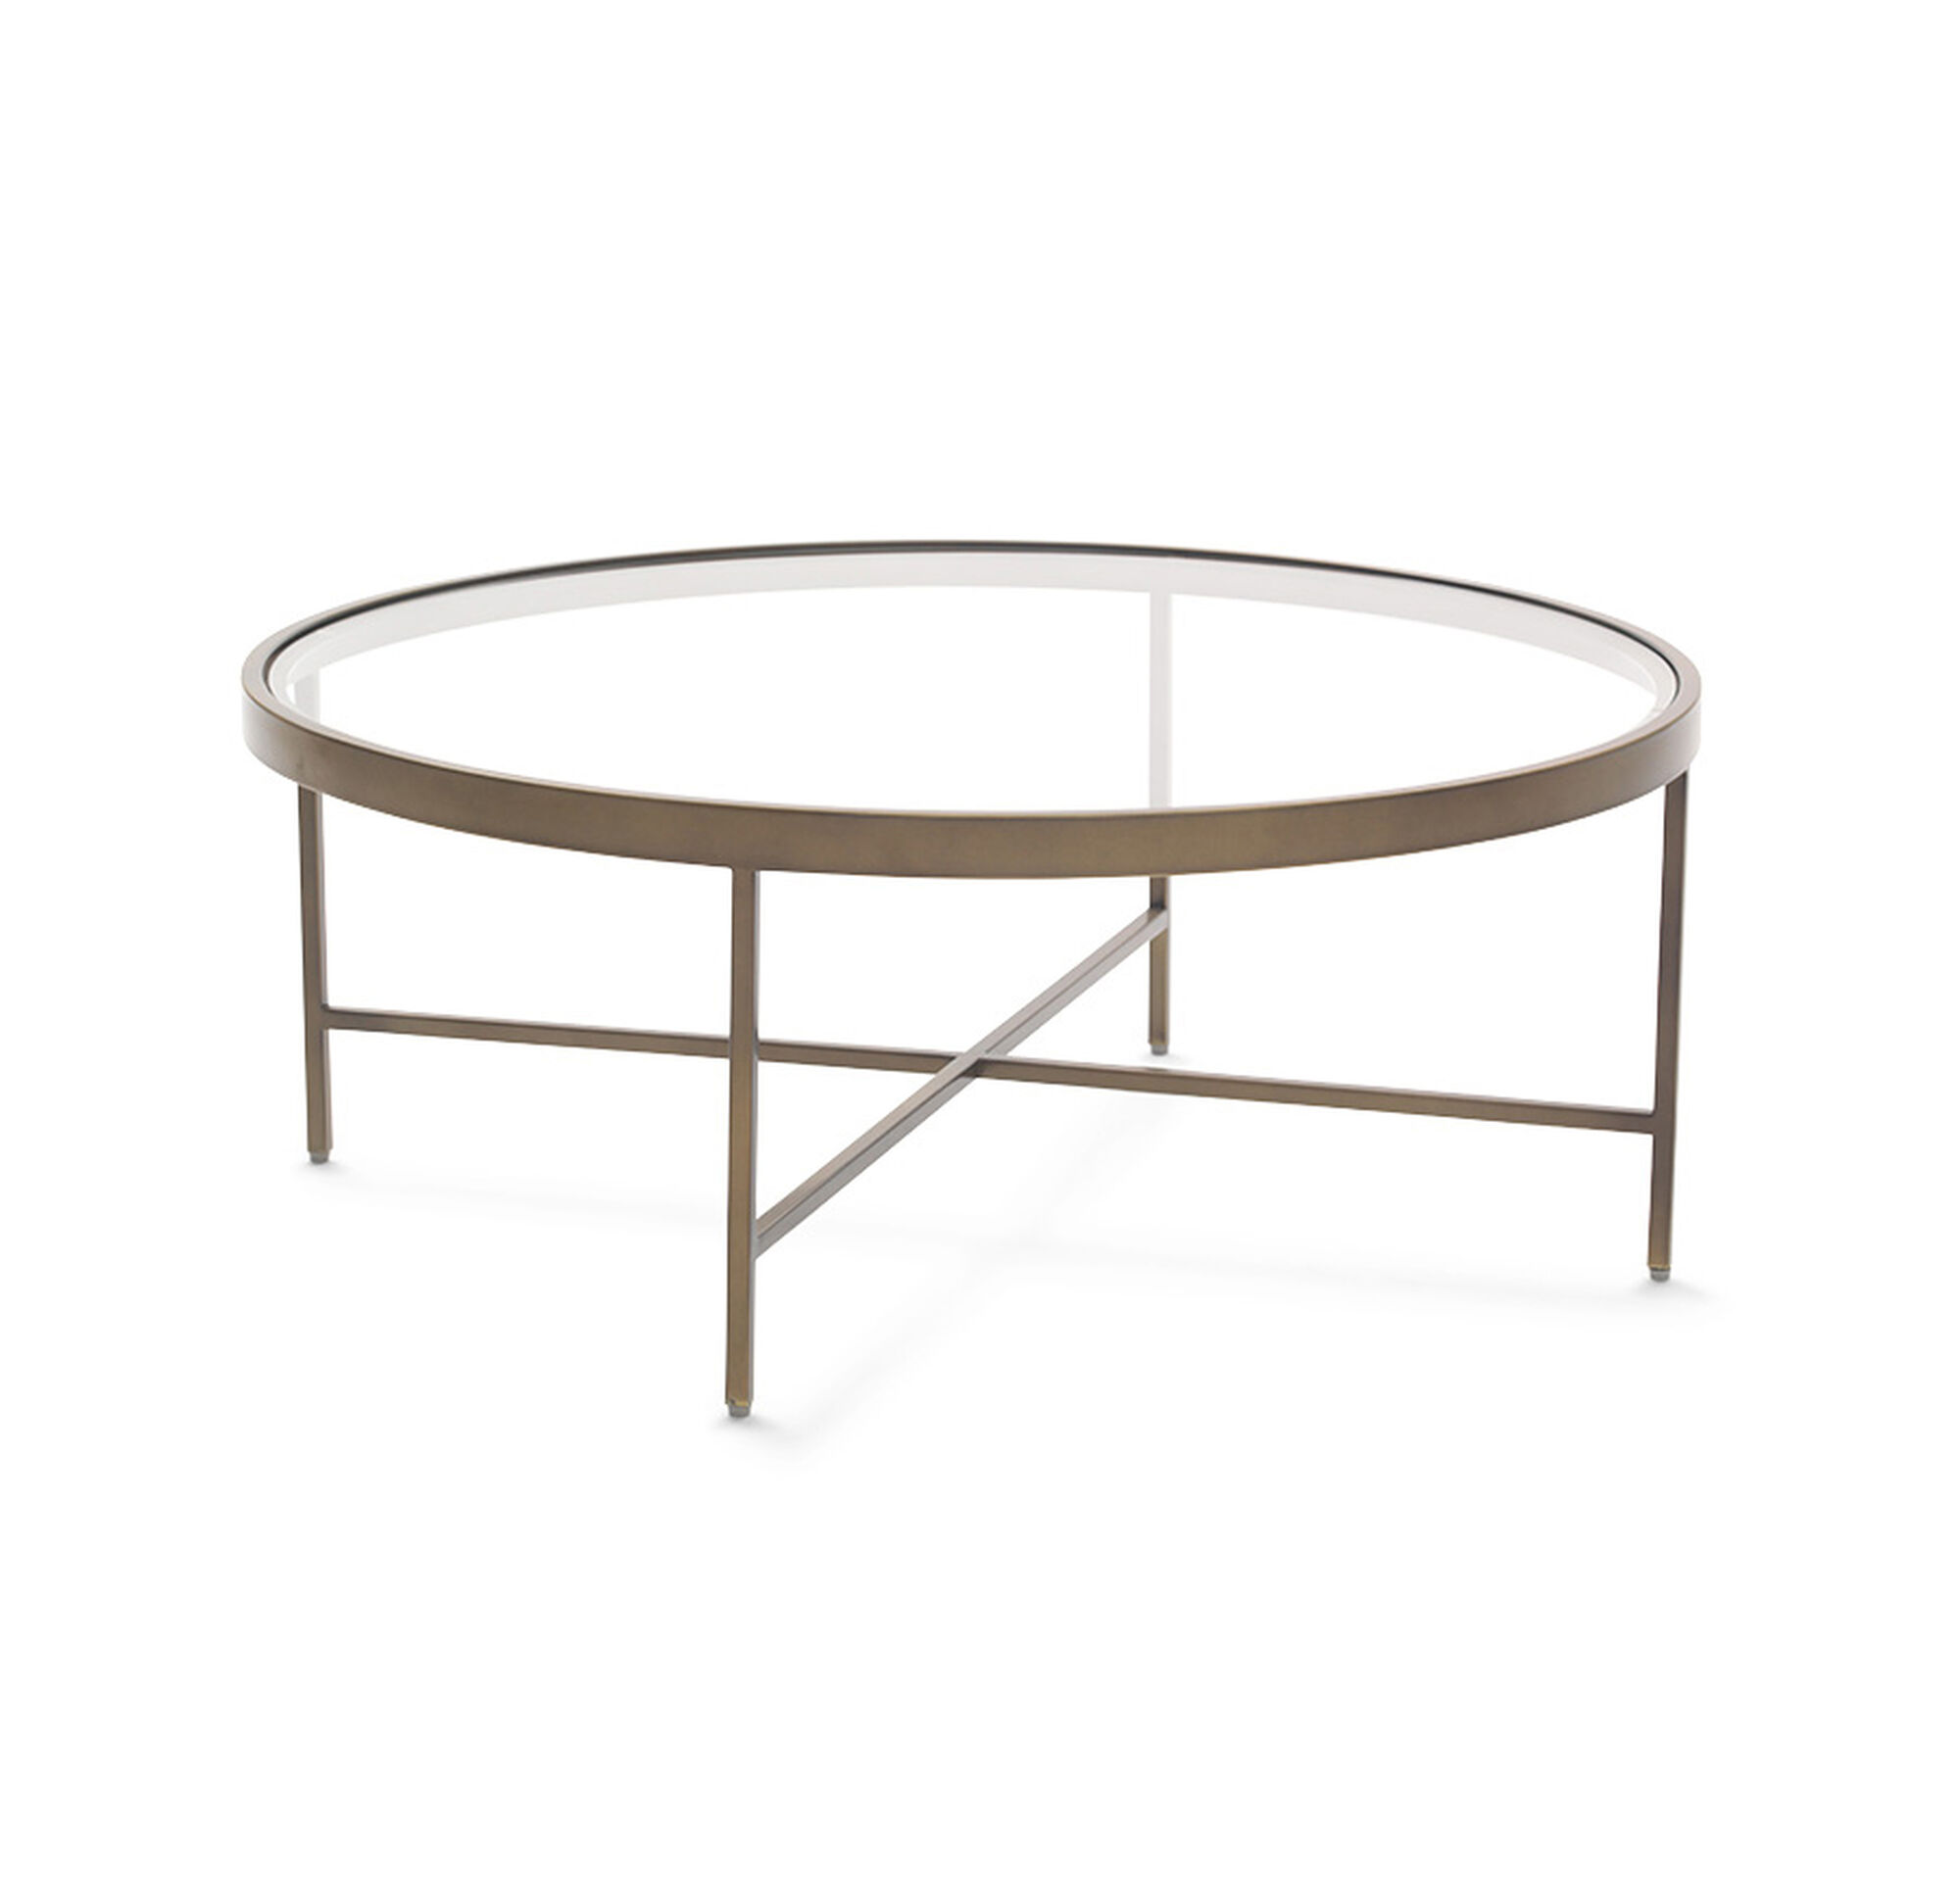 VIENNA ANTIQUE BRASS ROUND COCKTAIL TABLE - Coffee table stores near me